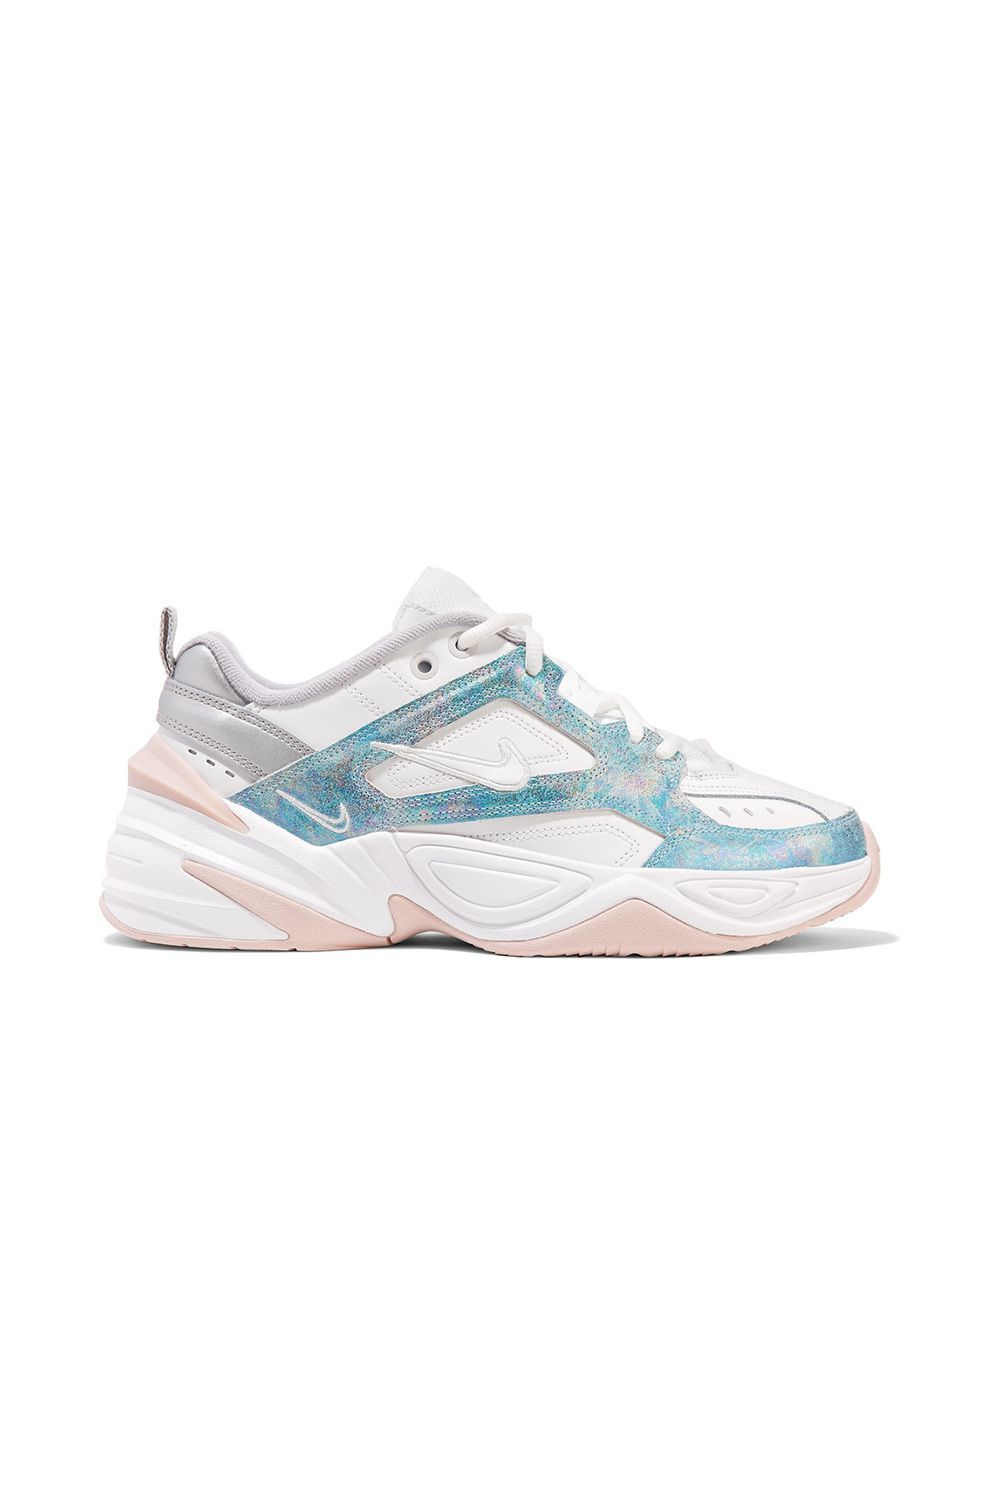 M2K Tekno Leather, Mesh and Satin Sneakers Nike net-a-porter.com $100.00 SHOP IT The iridescent blue sparkles on this sneaker are as captivating as the sand art from your childhood. The grey, pink, and blue hues bring a lightness to the shoe, making it well suited for springtime when you want to reach for the pastels and whites in your wardrobe.